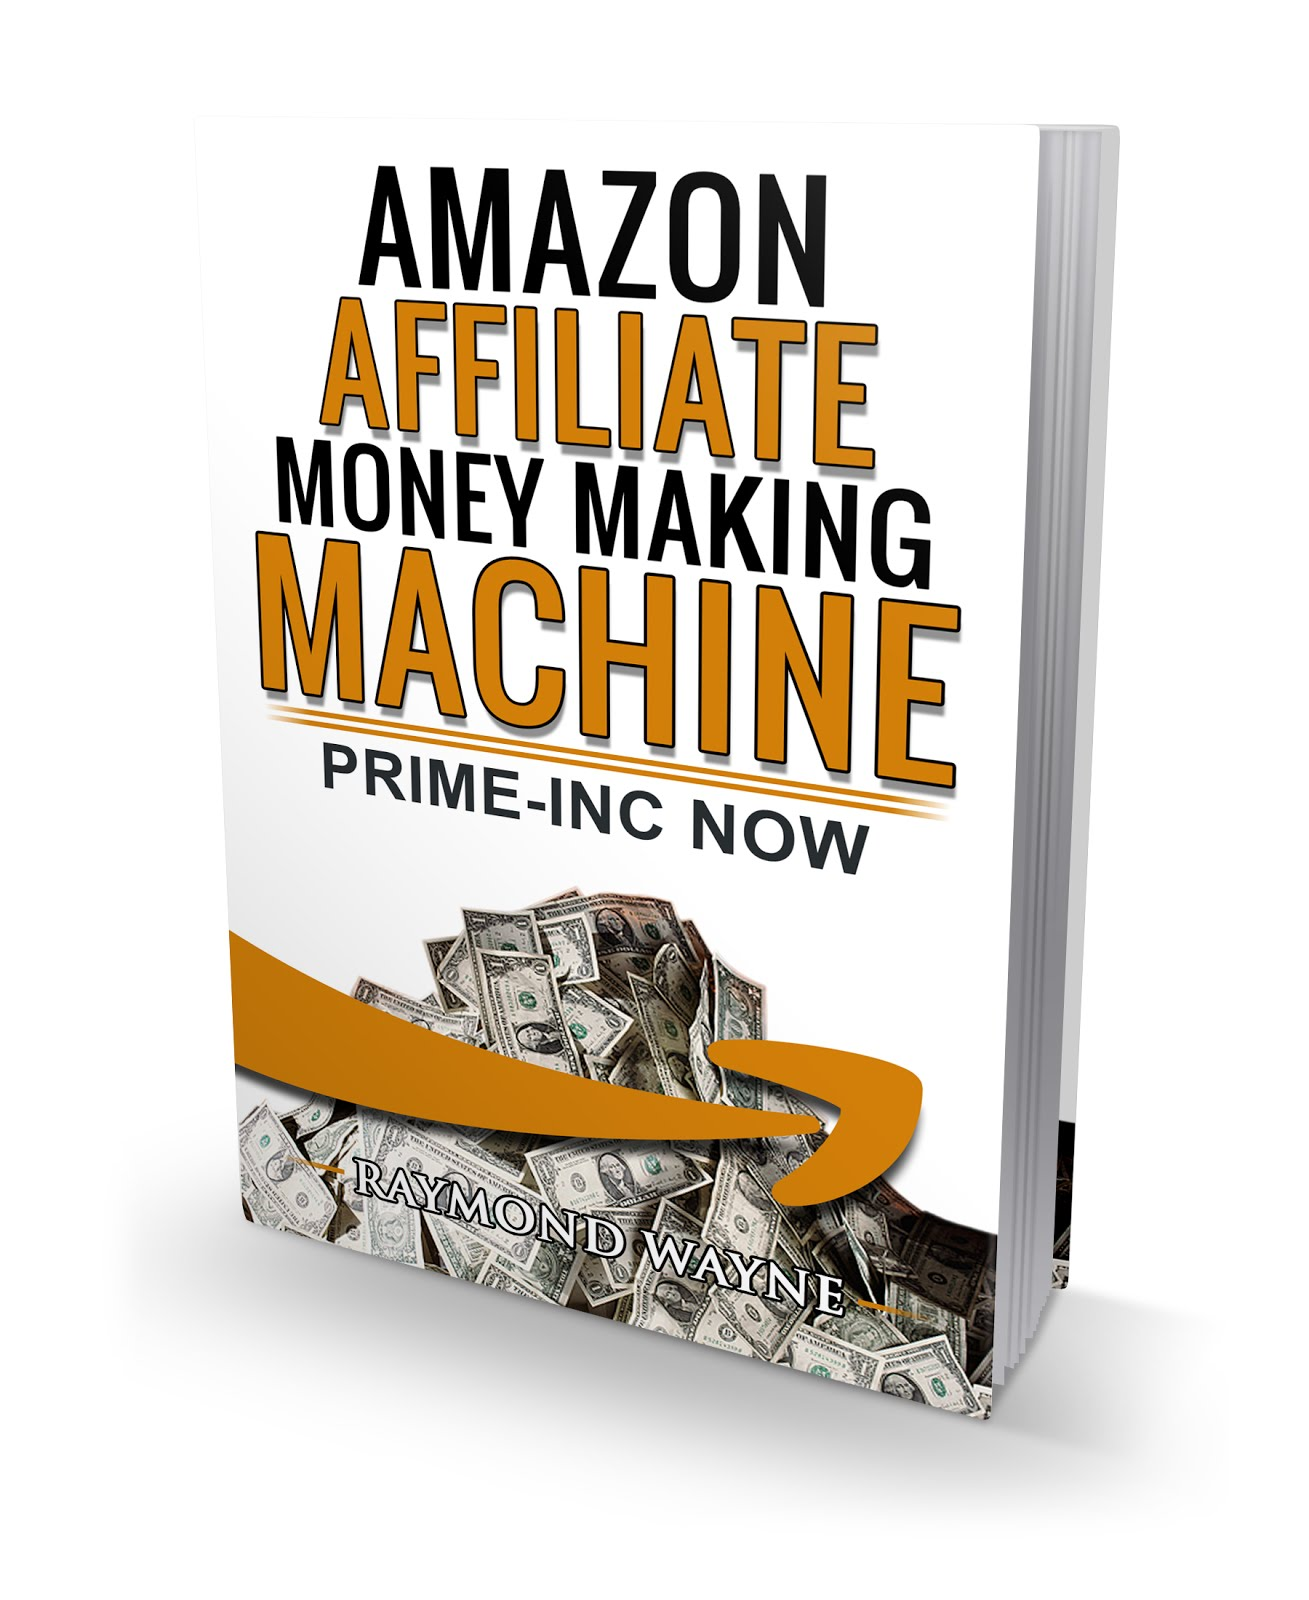 Amazon Affiliate #MoneyMaking Machine